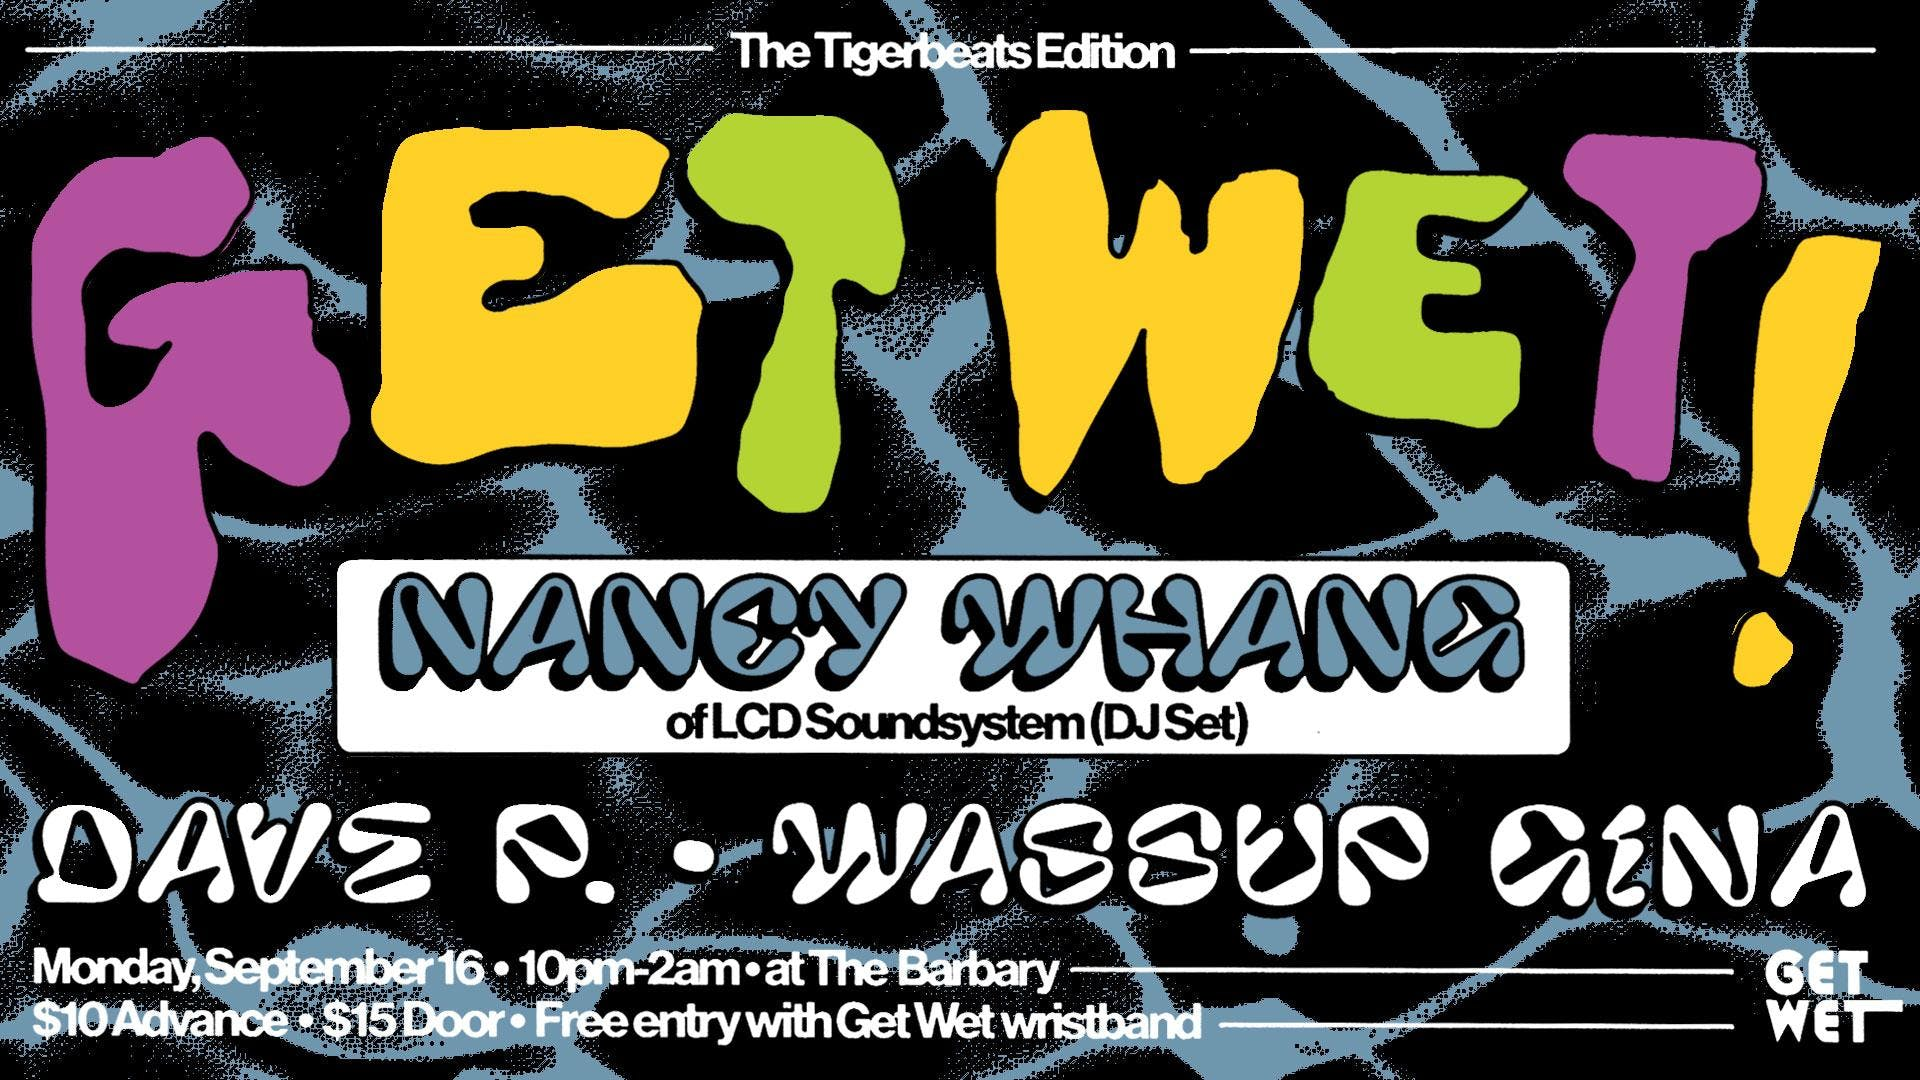 GET WET AFTER PARTY x TIGERBEATS EDITION w/ Nancy Whang (LCD Soundsystem)